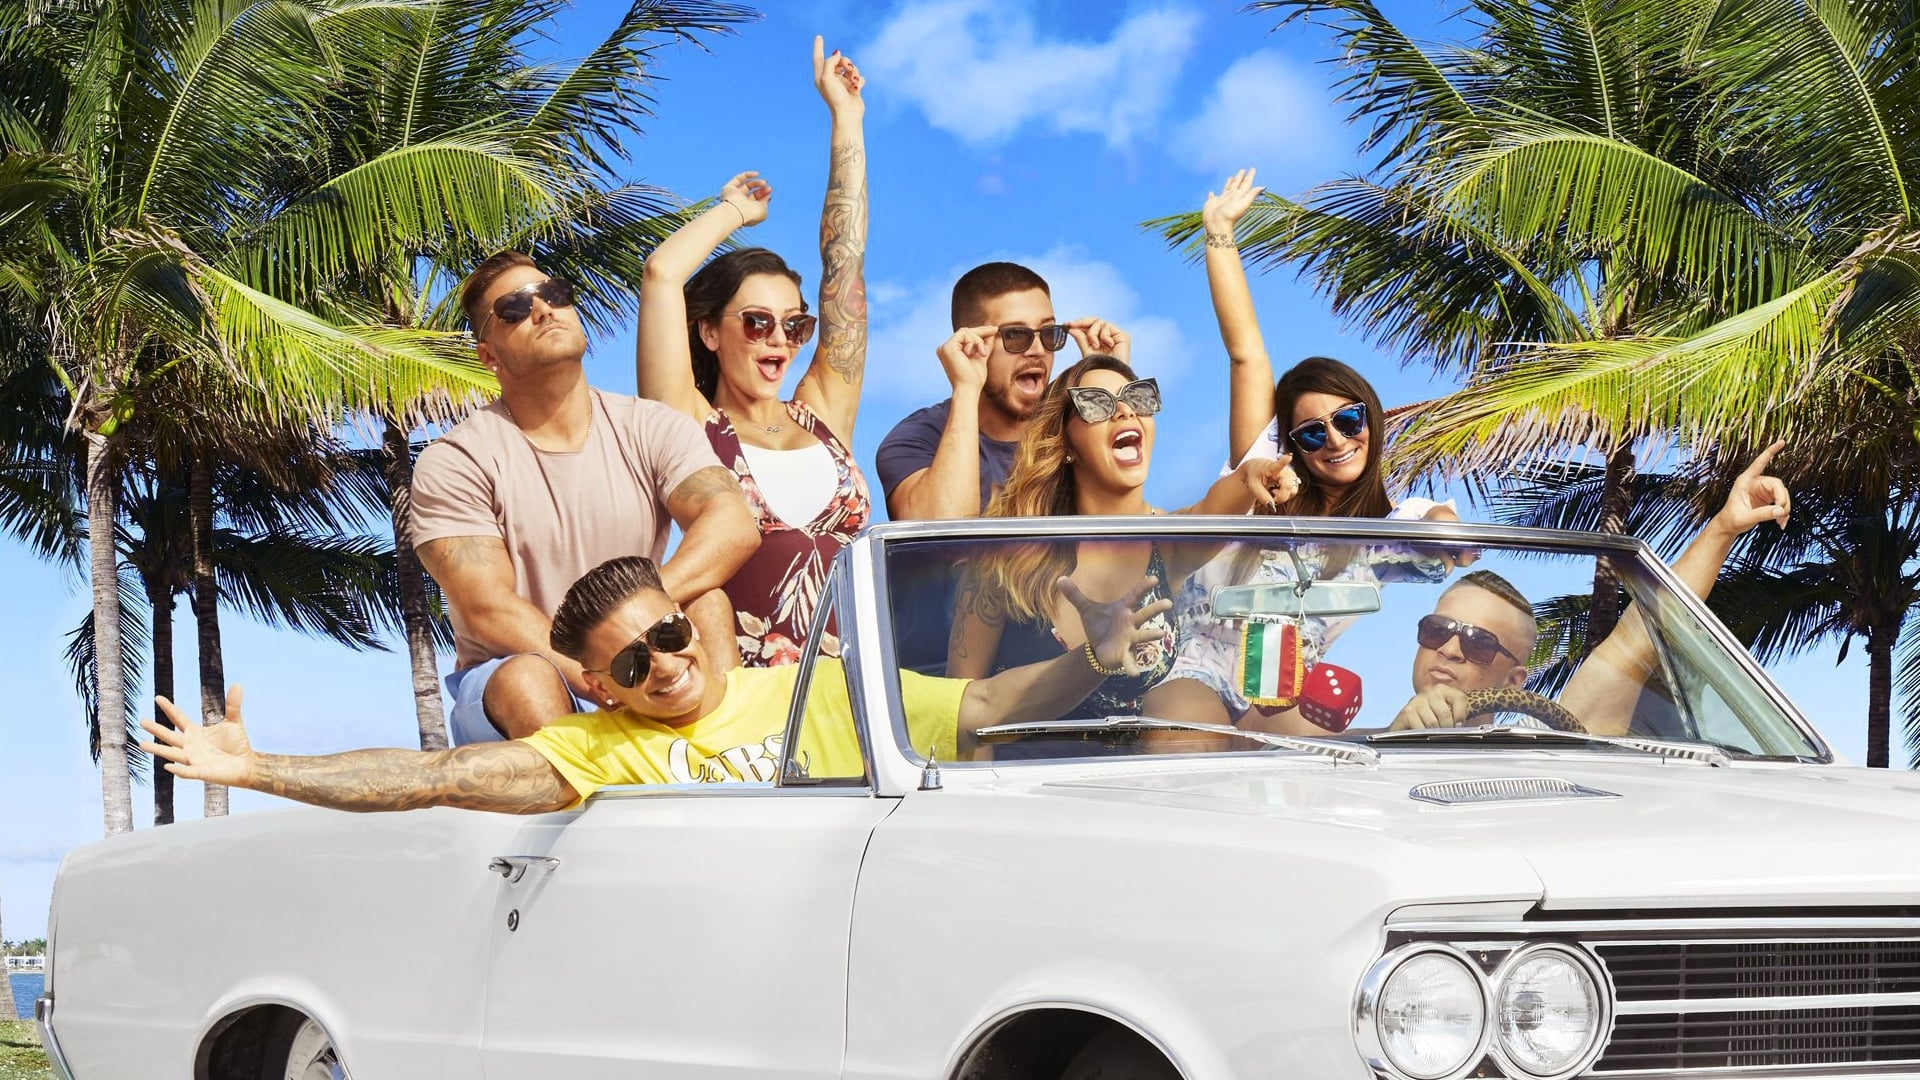 Jersey Shore: Family Vacation Season 4 Episode 6